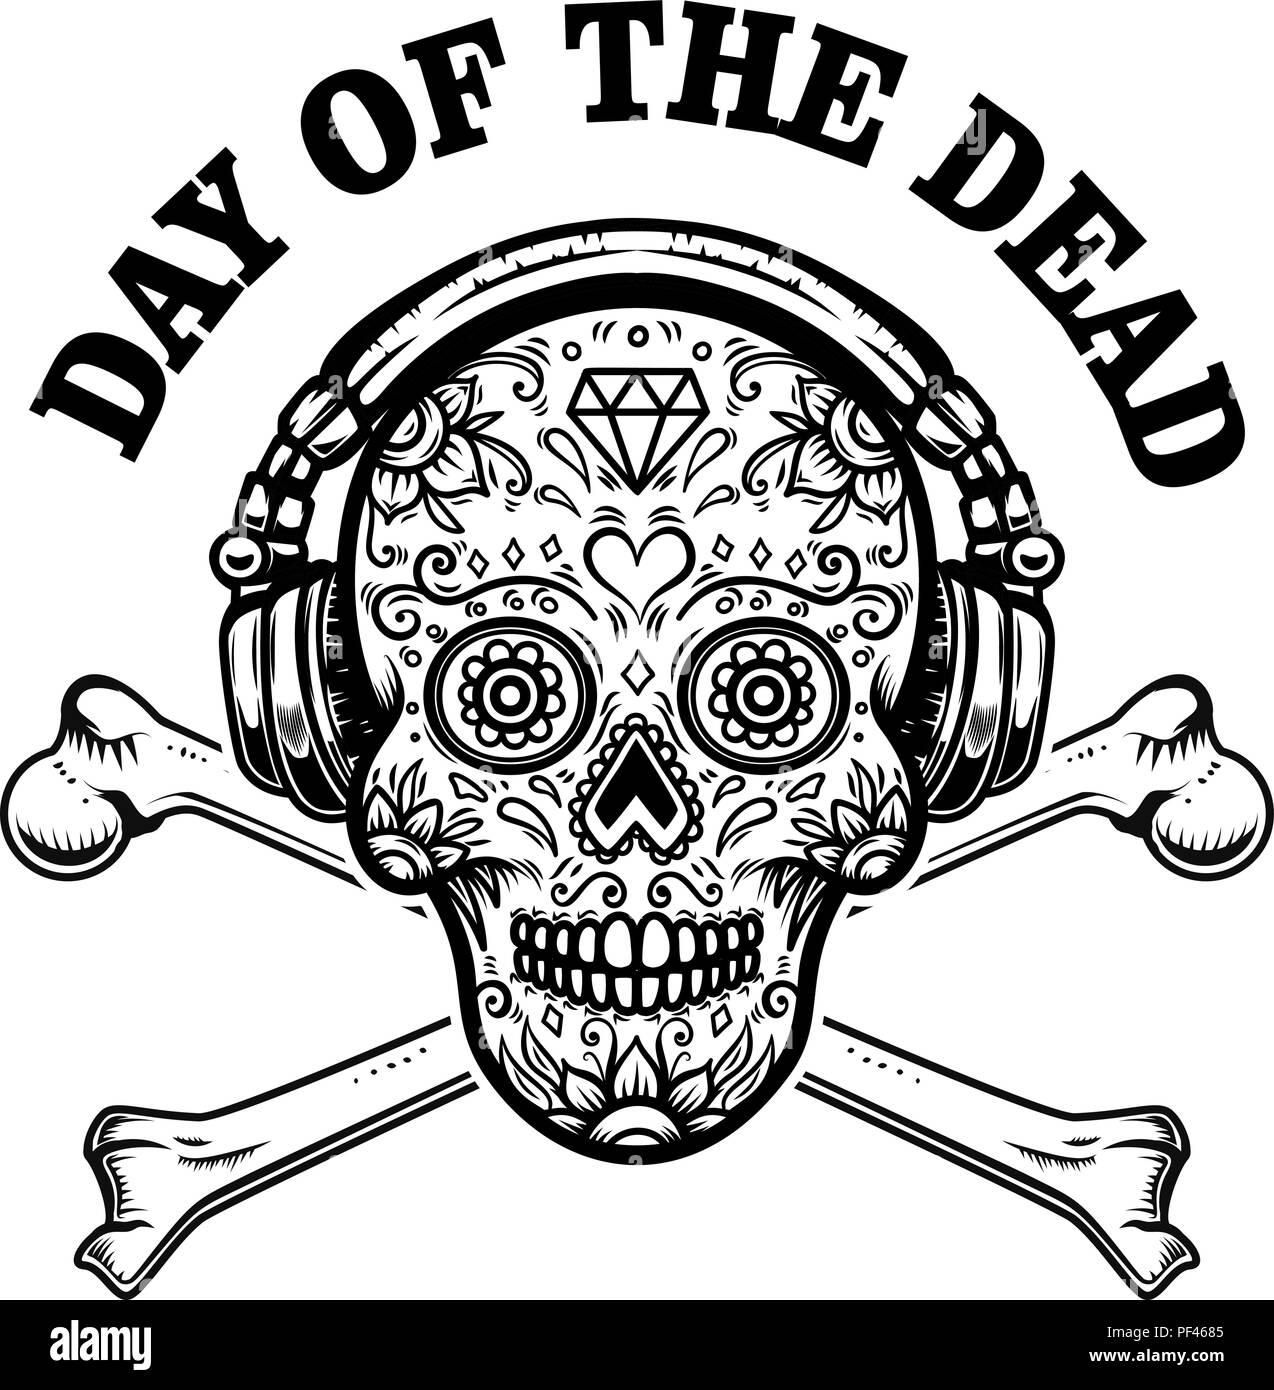 Mexican sugar skull with headphones and crossbones day of the dead mexican sugar skull with headphones and crossbones day of the dead design element for poster greeting card banner t shirt flyer emblem vector m4hsunfo